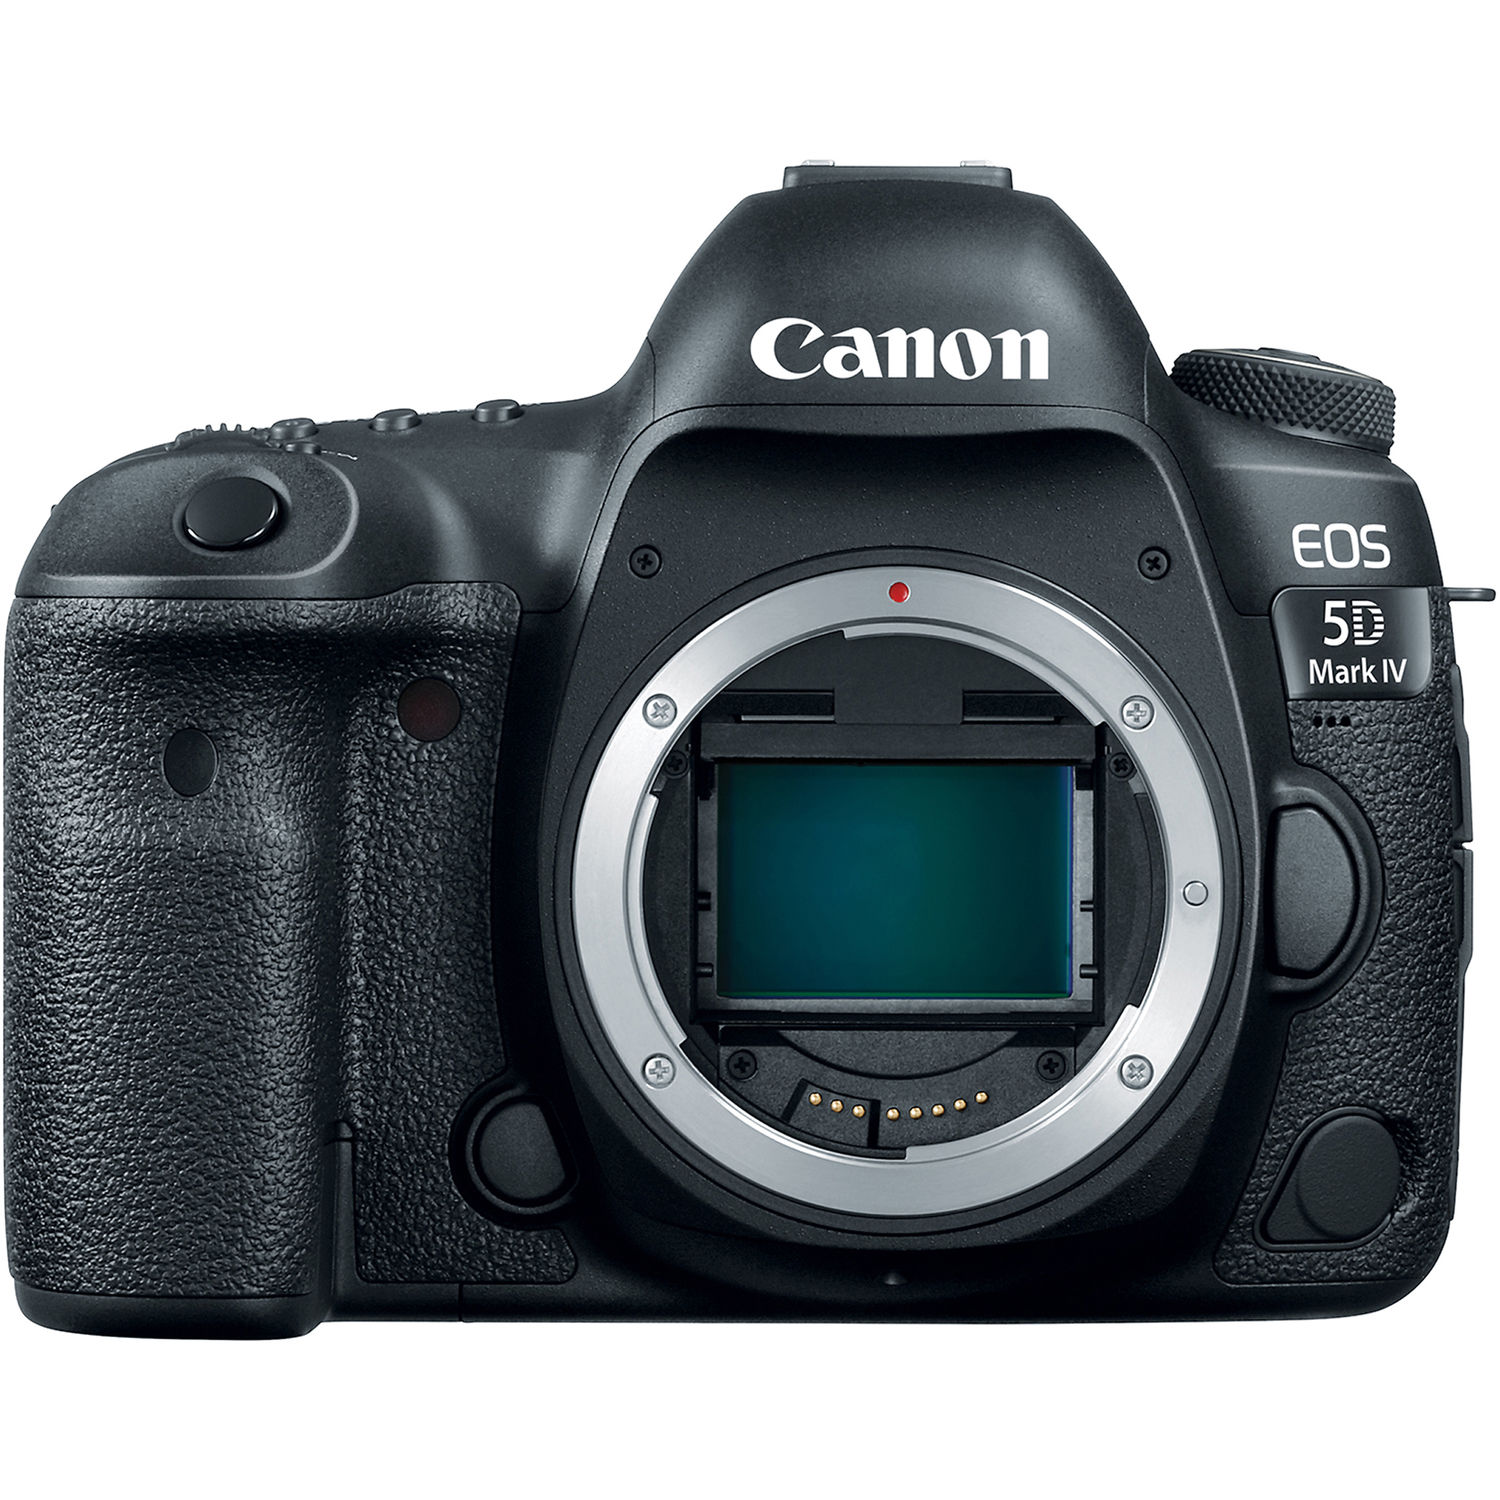 c5aaa5d5185 B H Photo Video - Canon 5d Mark Iv Eos Dslr Camera (5d Mark Iv ...